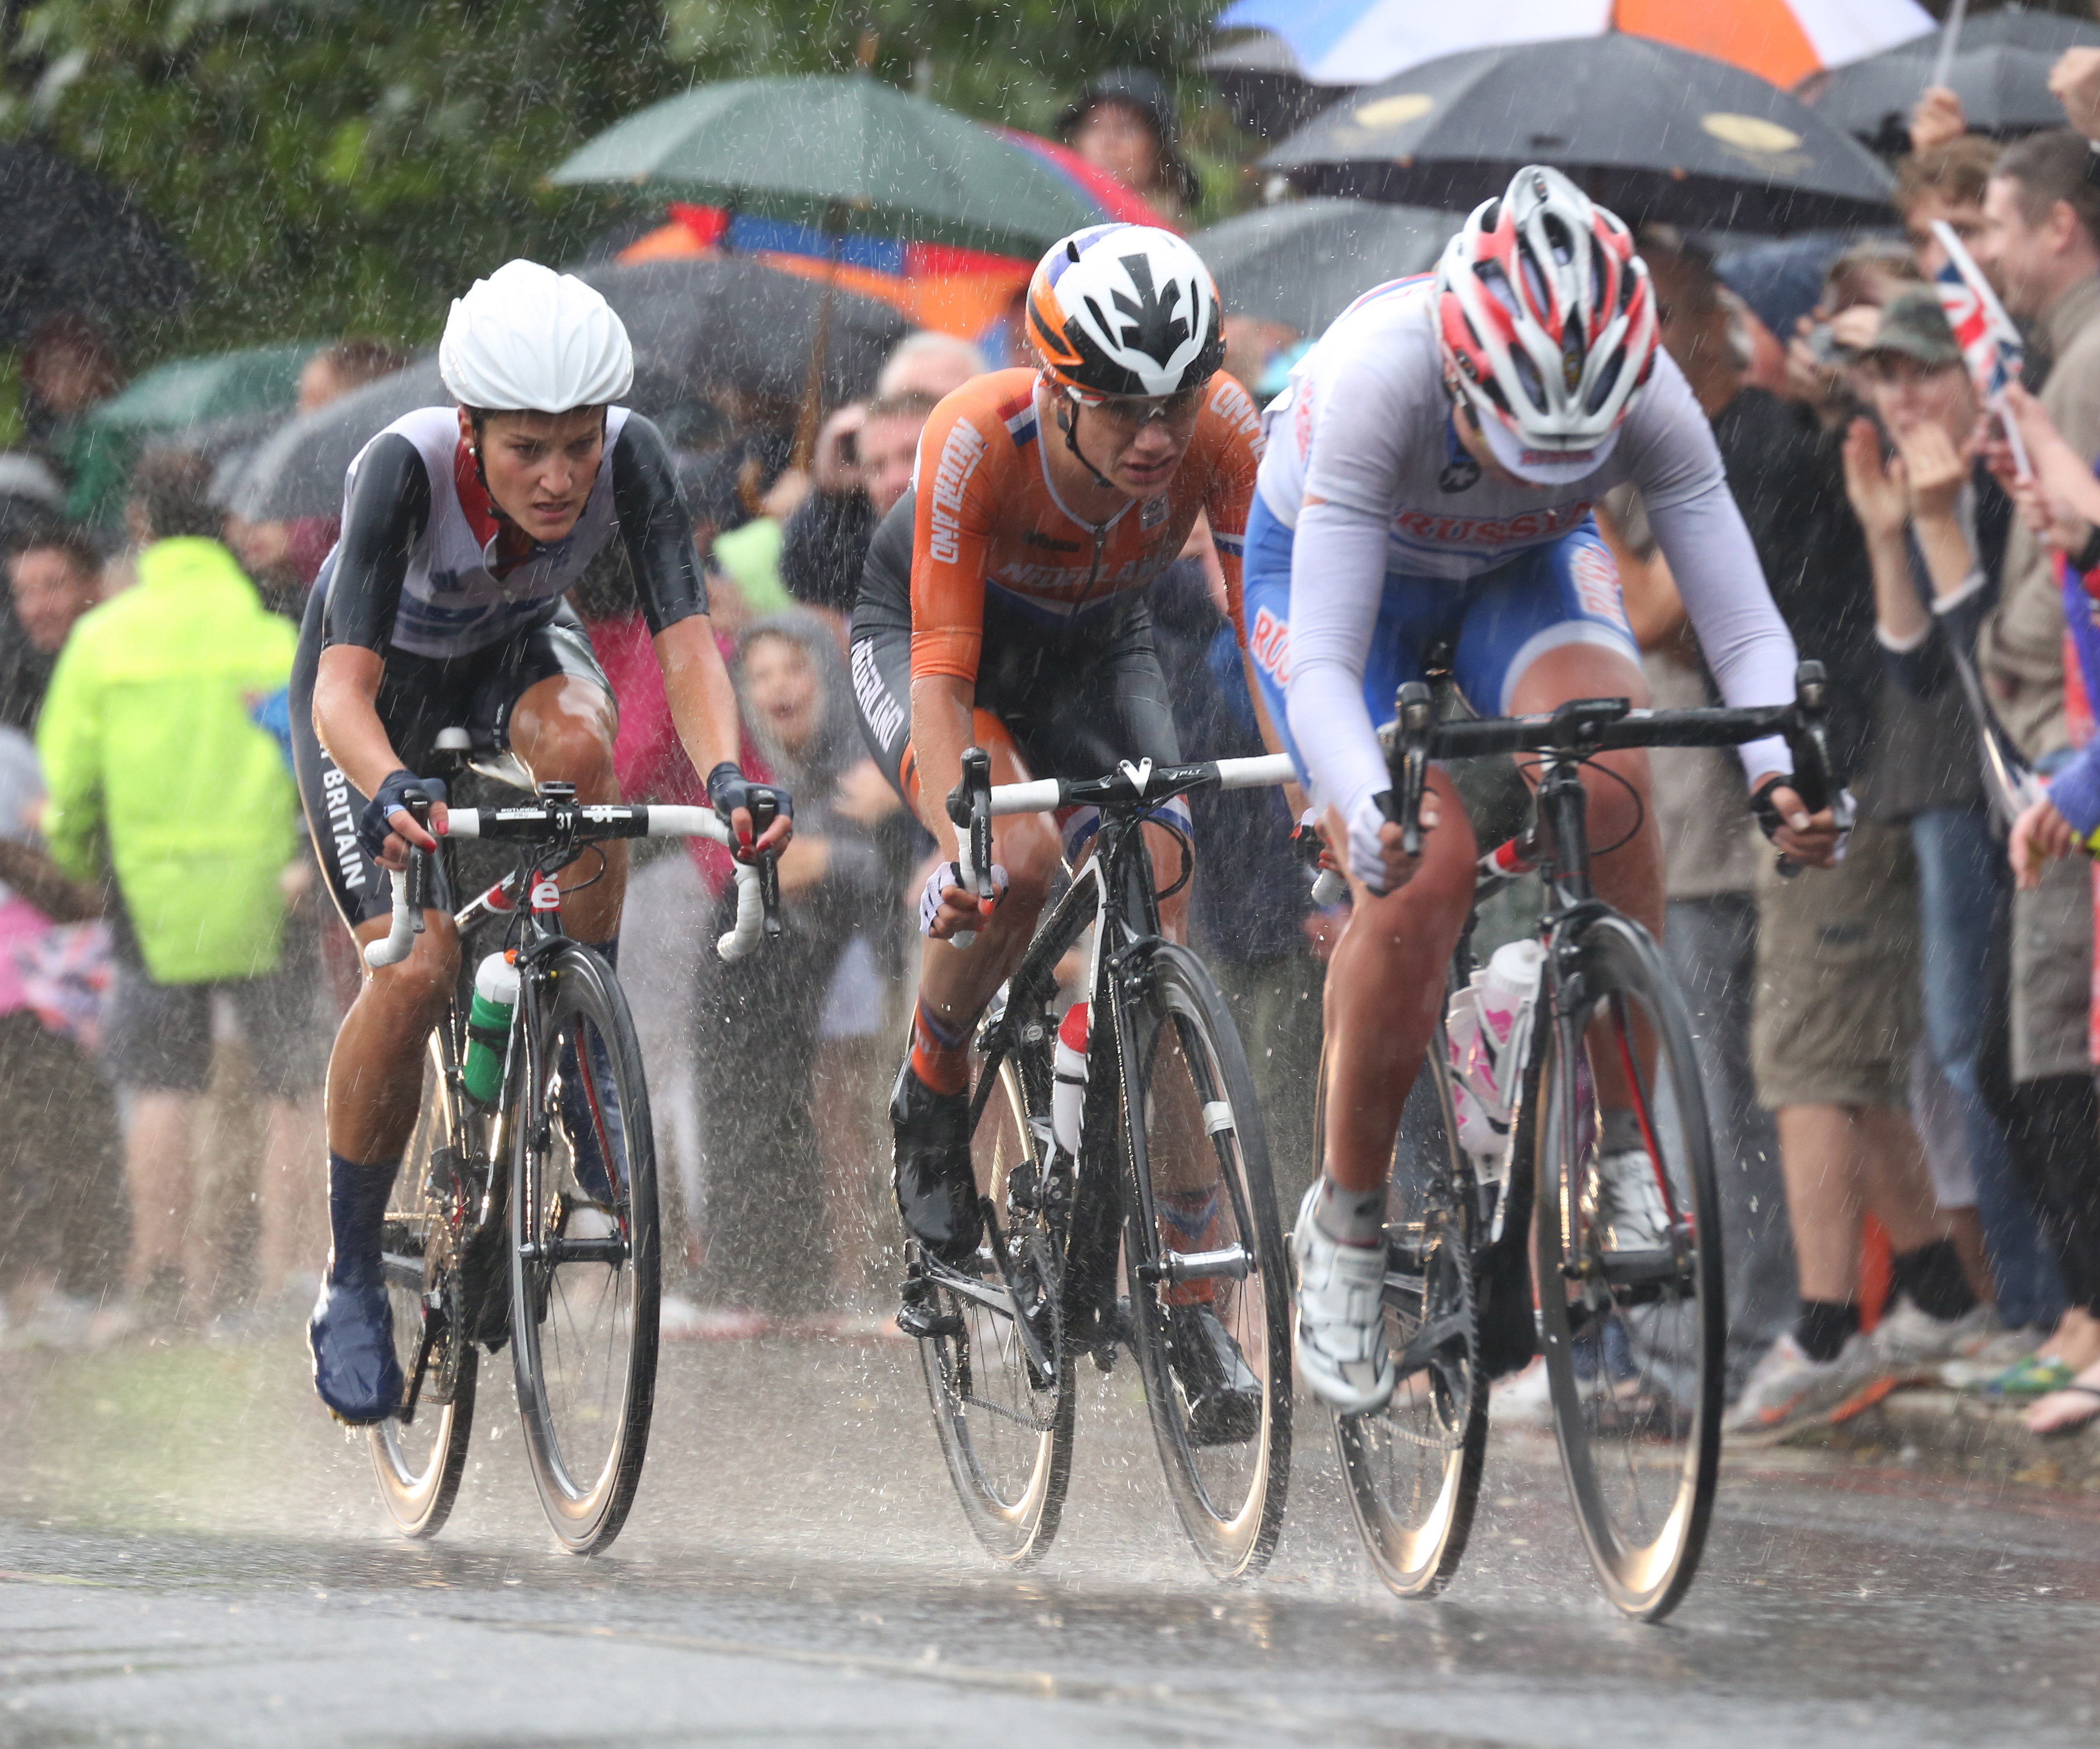 Road race with separate start. September 16, 2012 Results, pictures